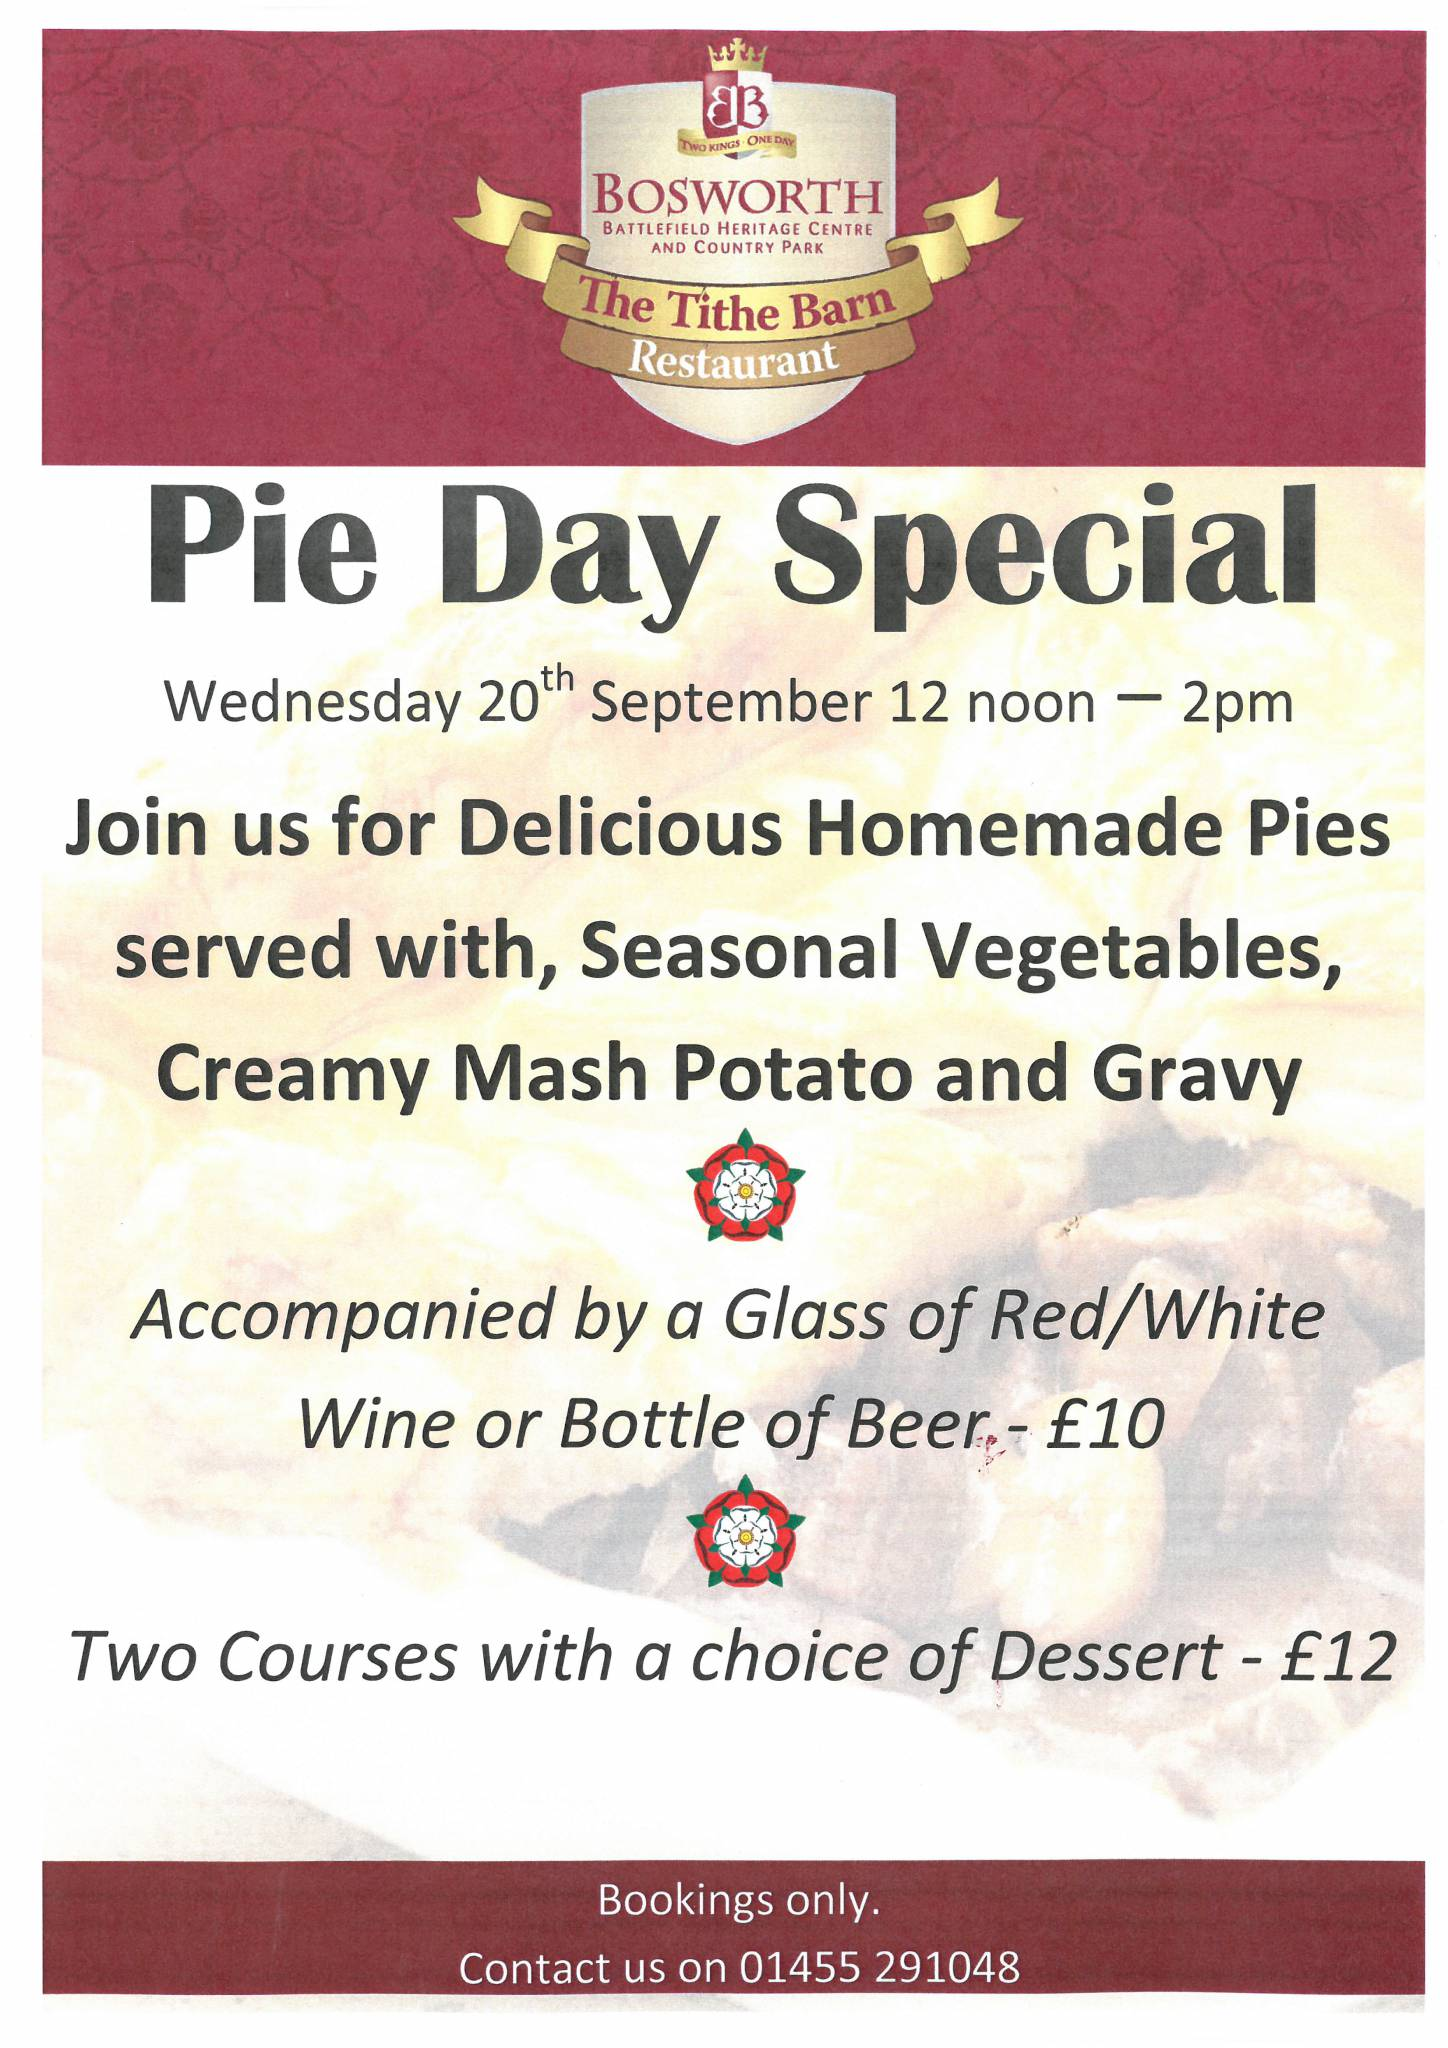 Pie Day Special